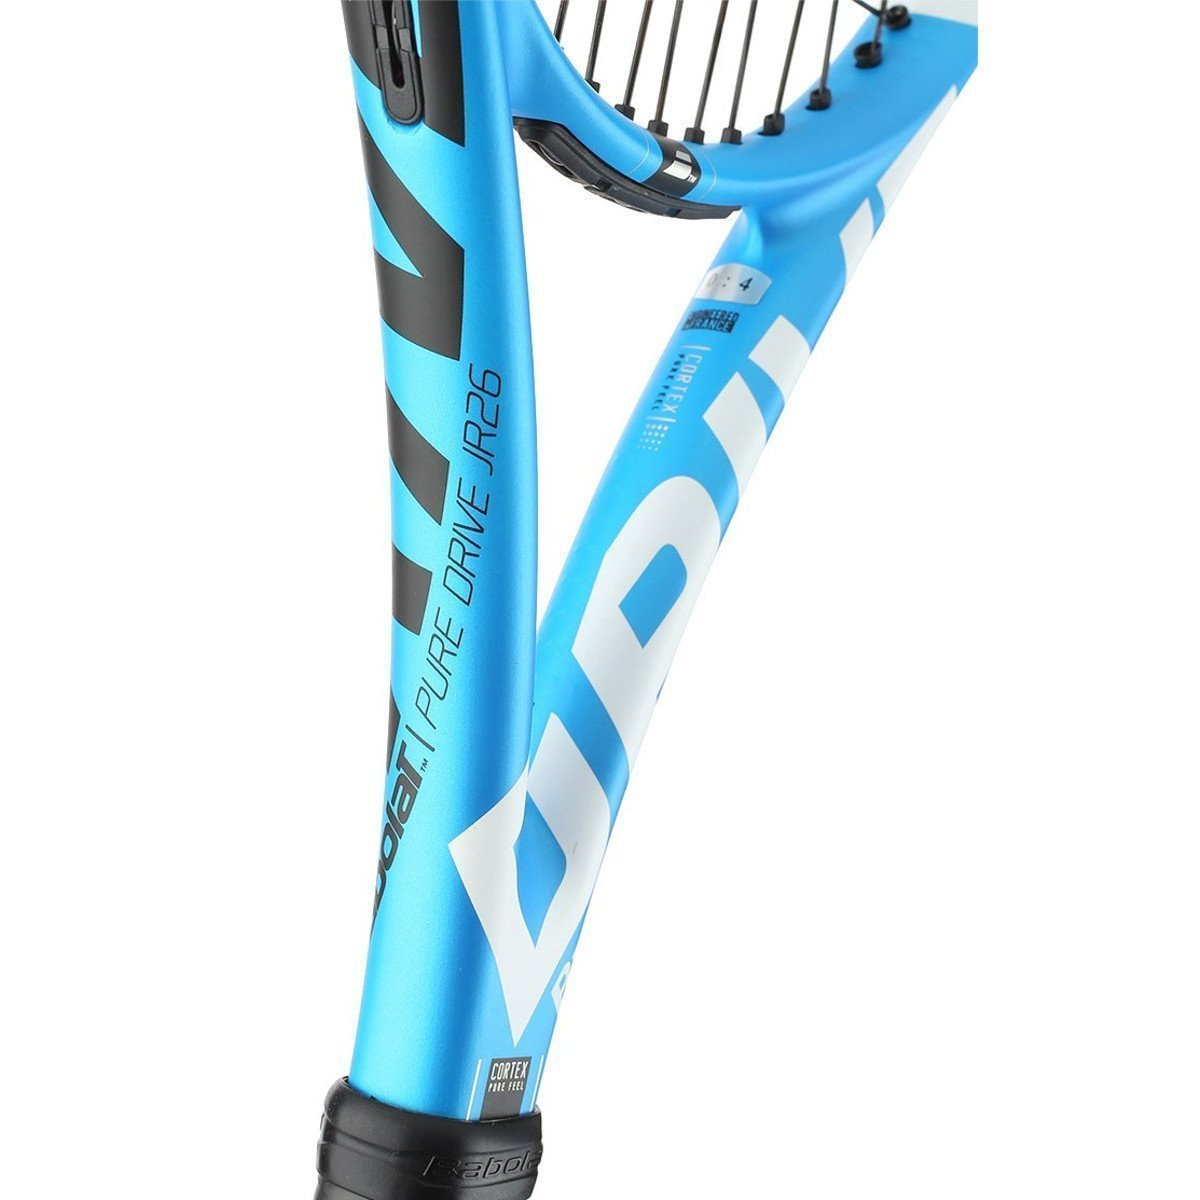 Amazon.com : Babolat Pure Drive 26 Junior Blue/White Tennis Racquet Strung with Custom Racket String Colors : Sports & Outdoors